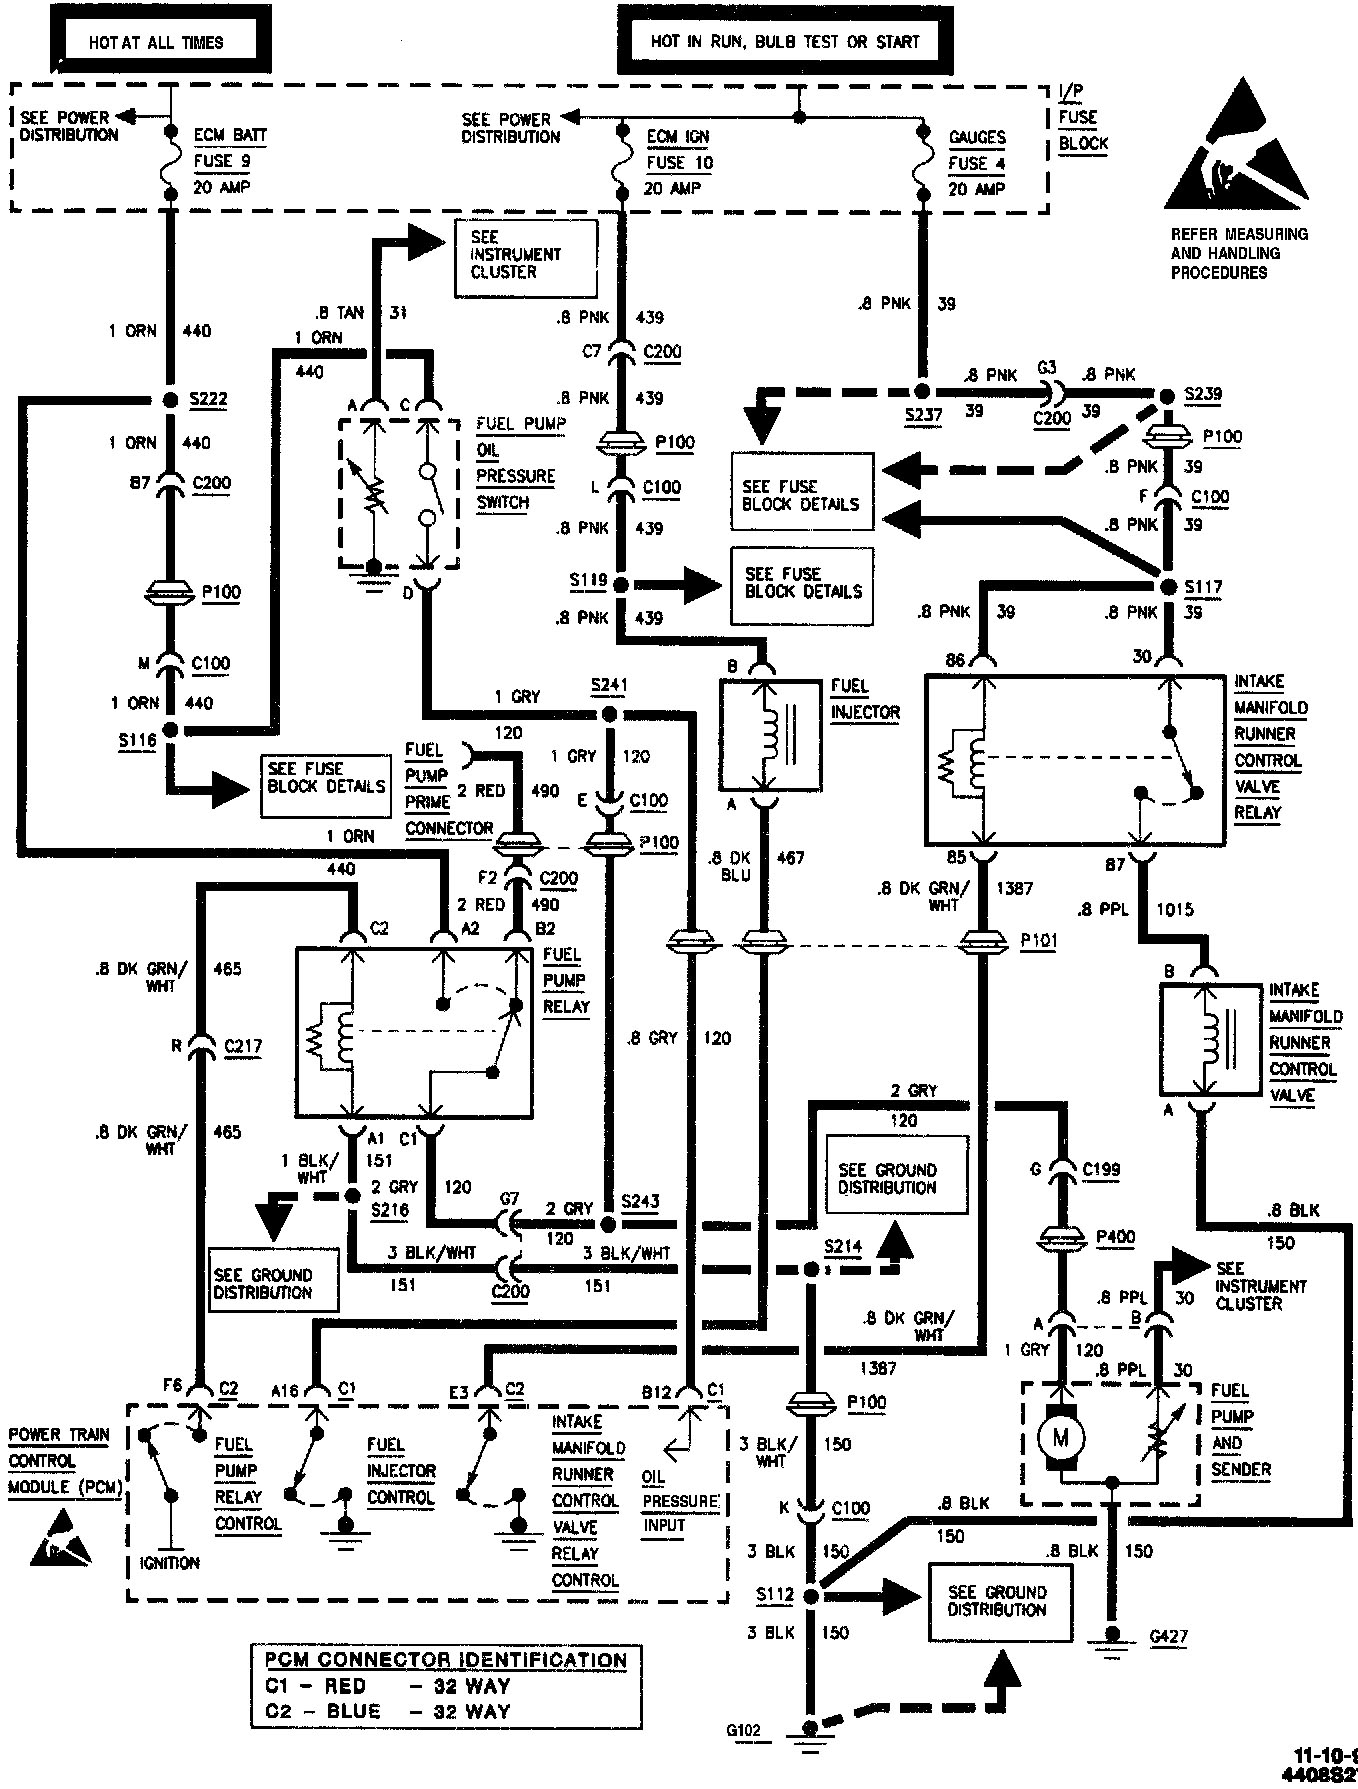 2001 Chevy Blazer Fuel Pump Wiring Diagram | Free Wiring ...